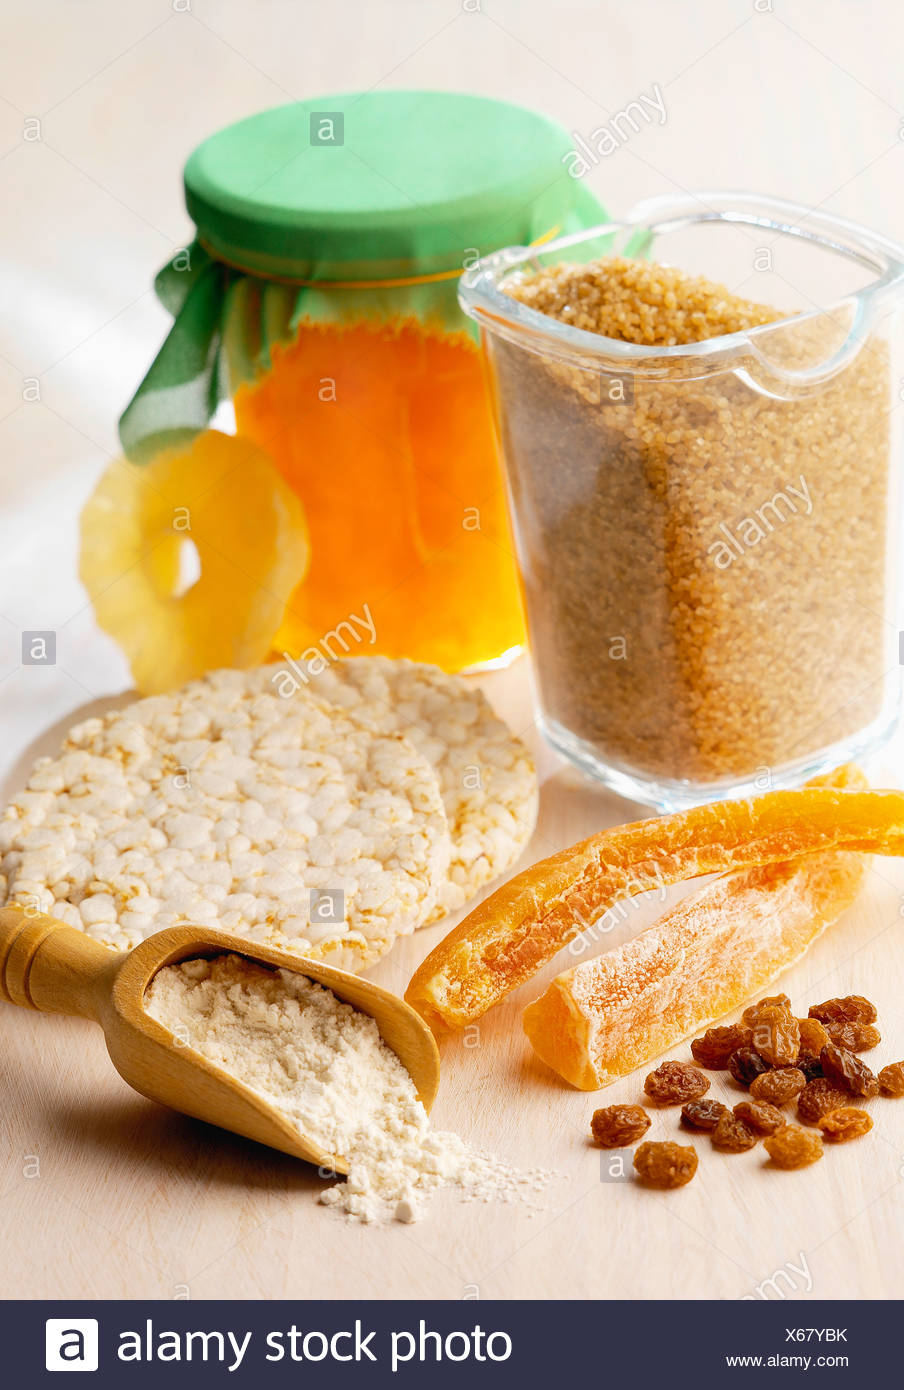 Dried fruit and cereal composition - Stock Image